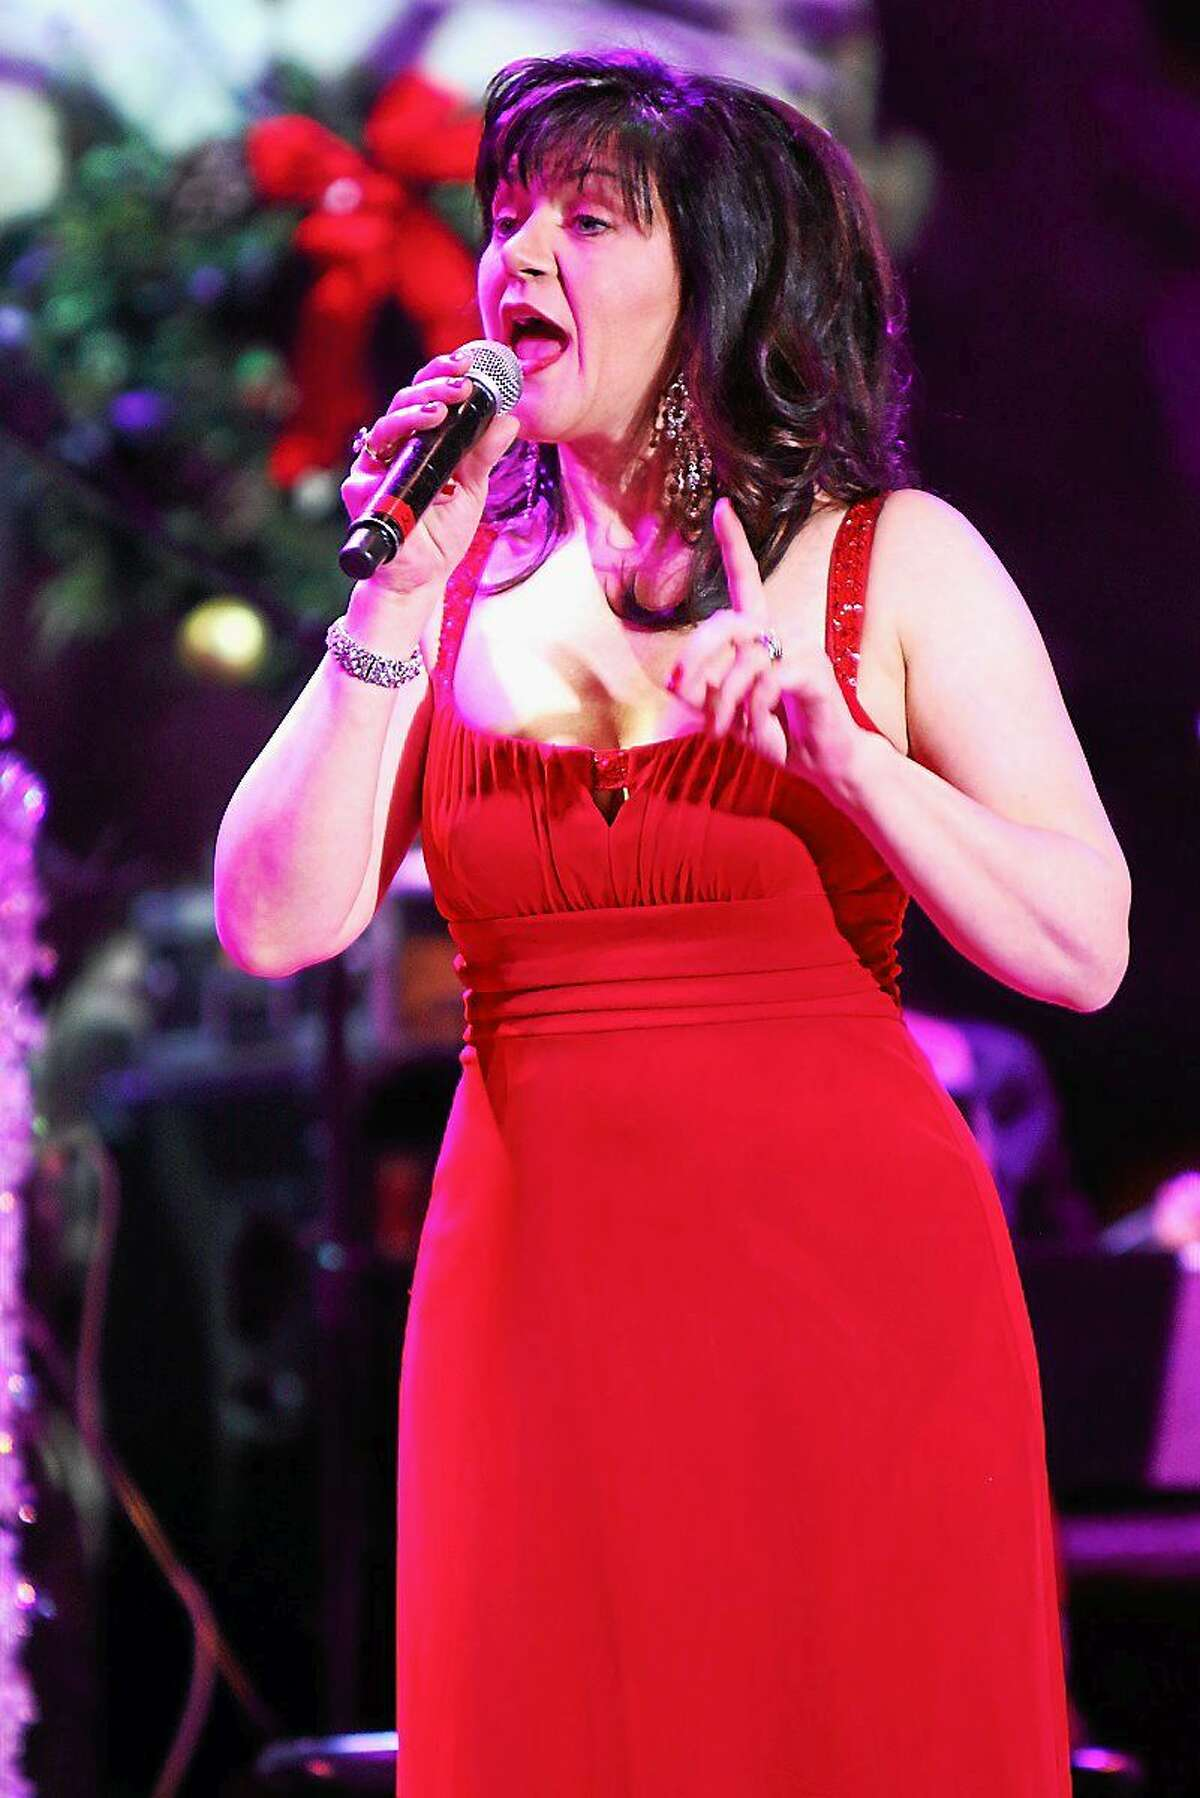 Photo by John Atashian Singer Michelle Berting Brett is shown entertaining a capacity crowd of fans with holiday hits and songs of The Carpenters during her performance at the Mohegan Sun Casino on Dec. 6. Currently based in Connecticut, Michelle appears regularly with the Heartbeat Jazz Band. Other recent performance include singing background vocals for Ronnie Spector (The Ronettes), singing with Marshall Lytle (Bill Haleyís Comet), and guesting with Matt ìGuitar Murphy (The Blues Brothers) opening for Little Richard at BB Kingís Club in NYC. Michelle regularly stars in ìWeíve Only Just Begun: Carpenters Rememberedî. To learn more about this rising star you can visit her website at www.michellebertingbrett.com